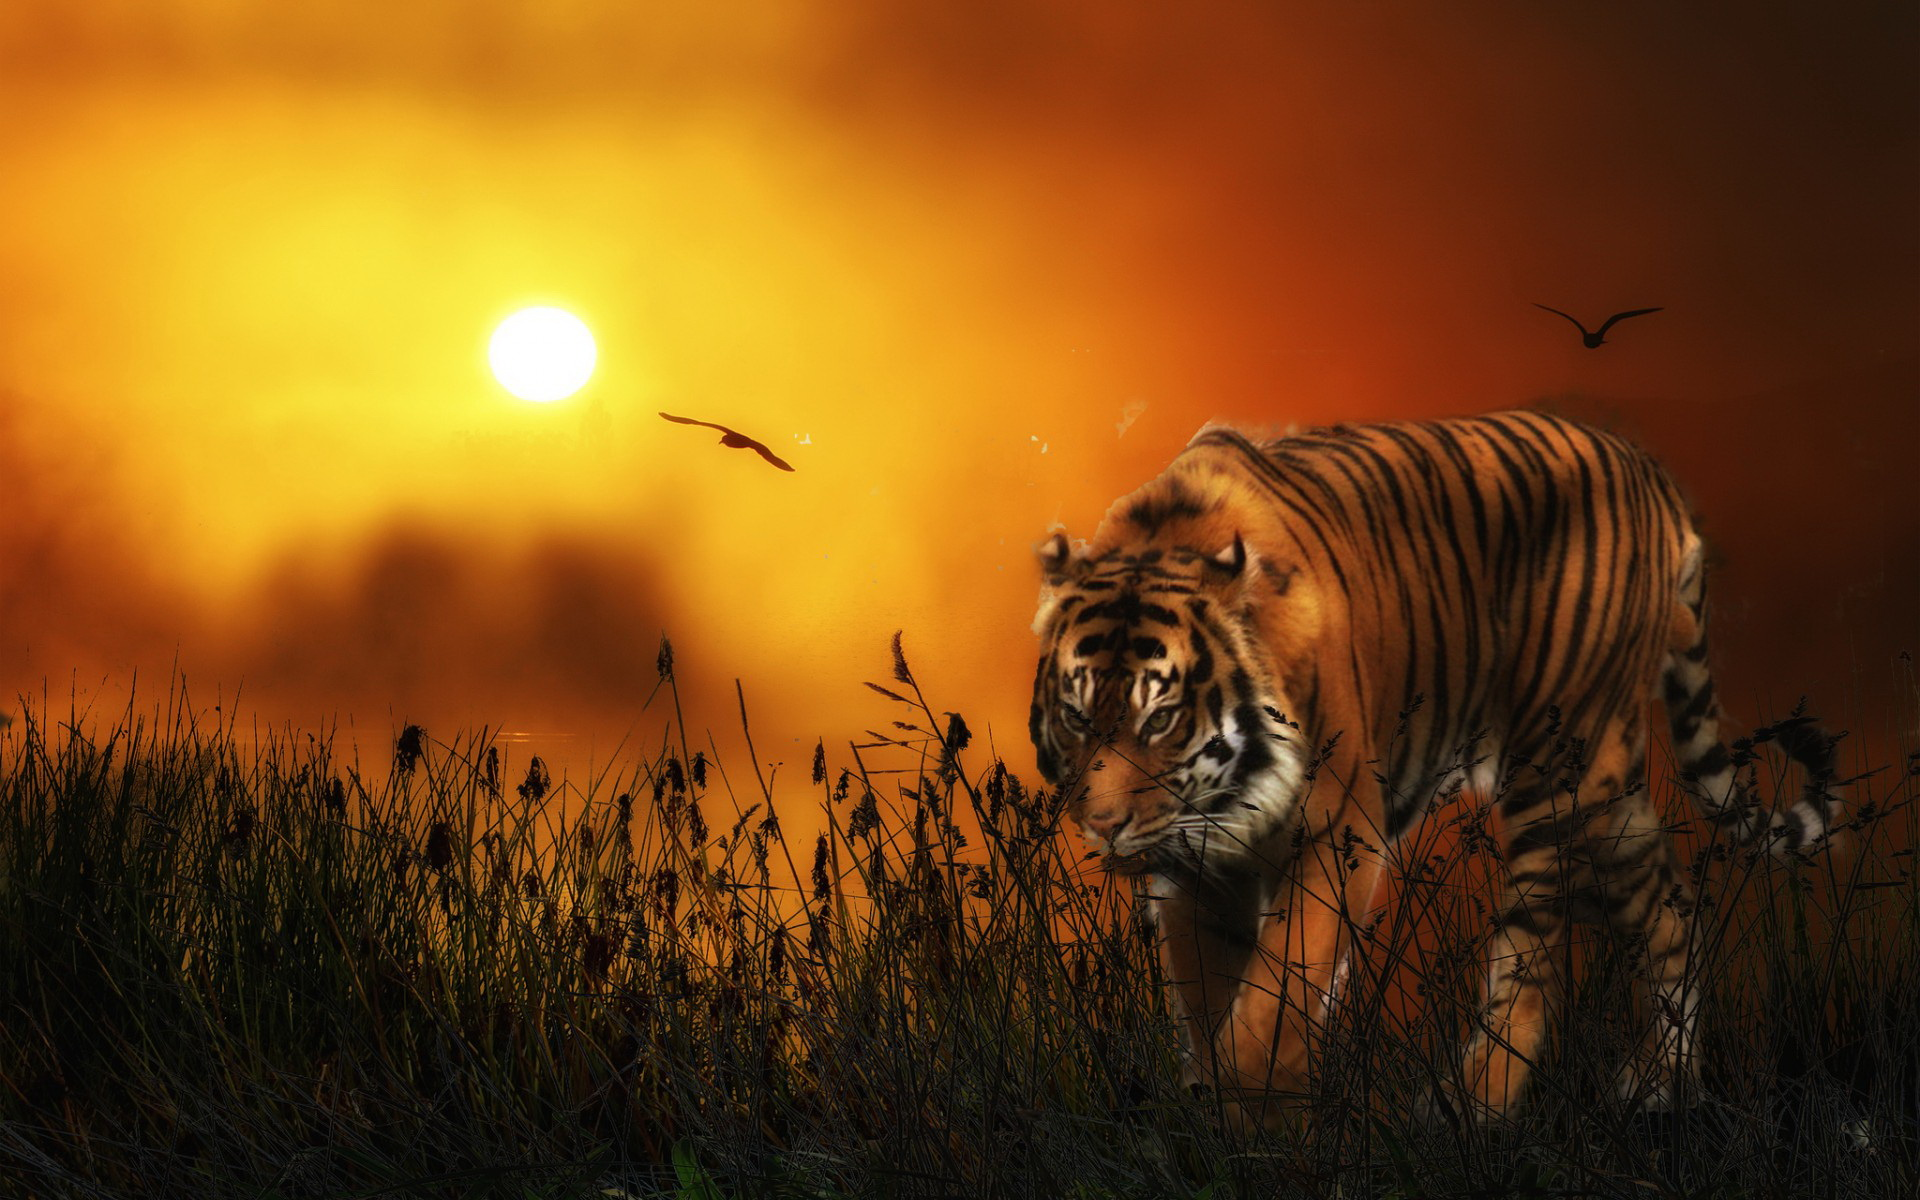 Tiger hd wallpaper background image 1920x1200 id 525097 wallpaper abyss - Tiger hd wallpaper for pc ...